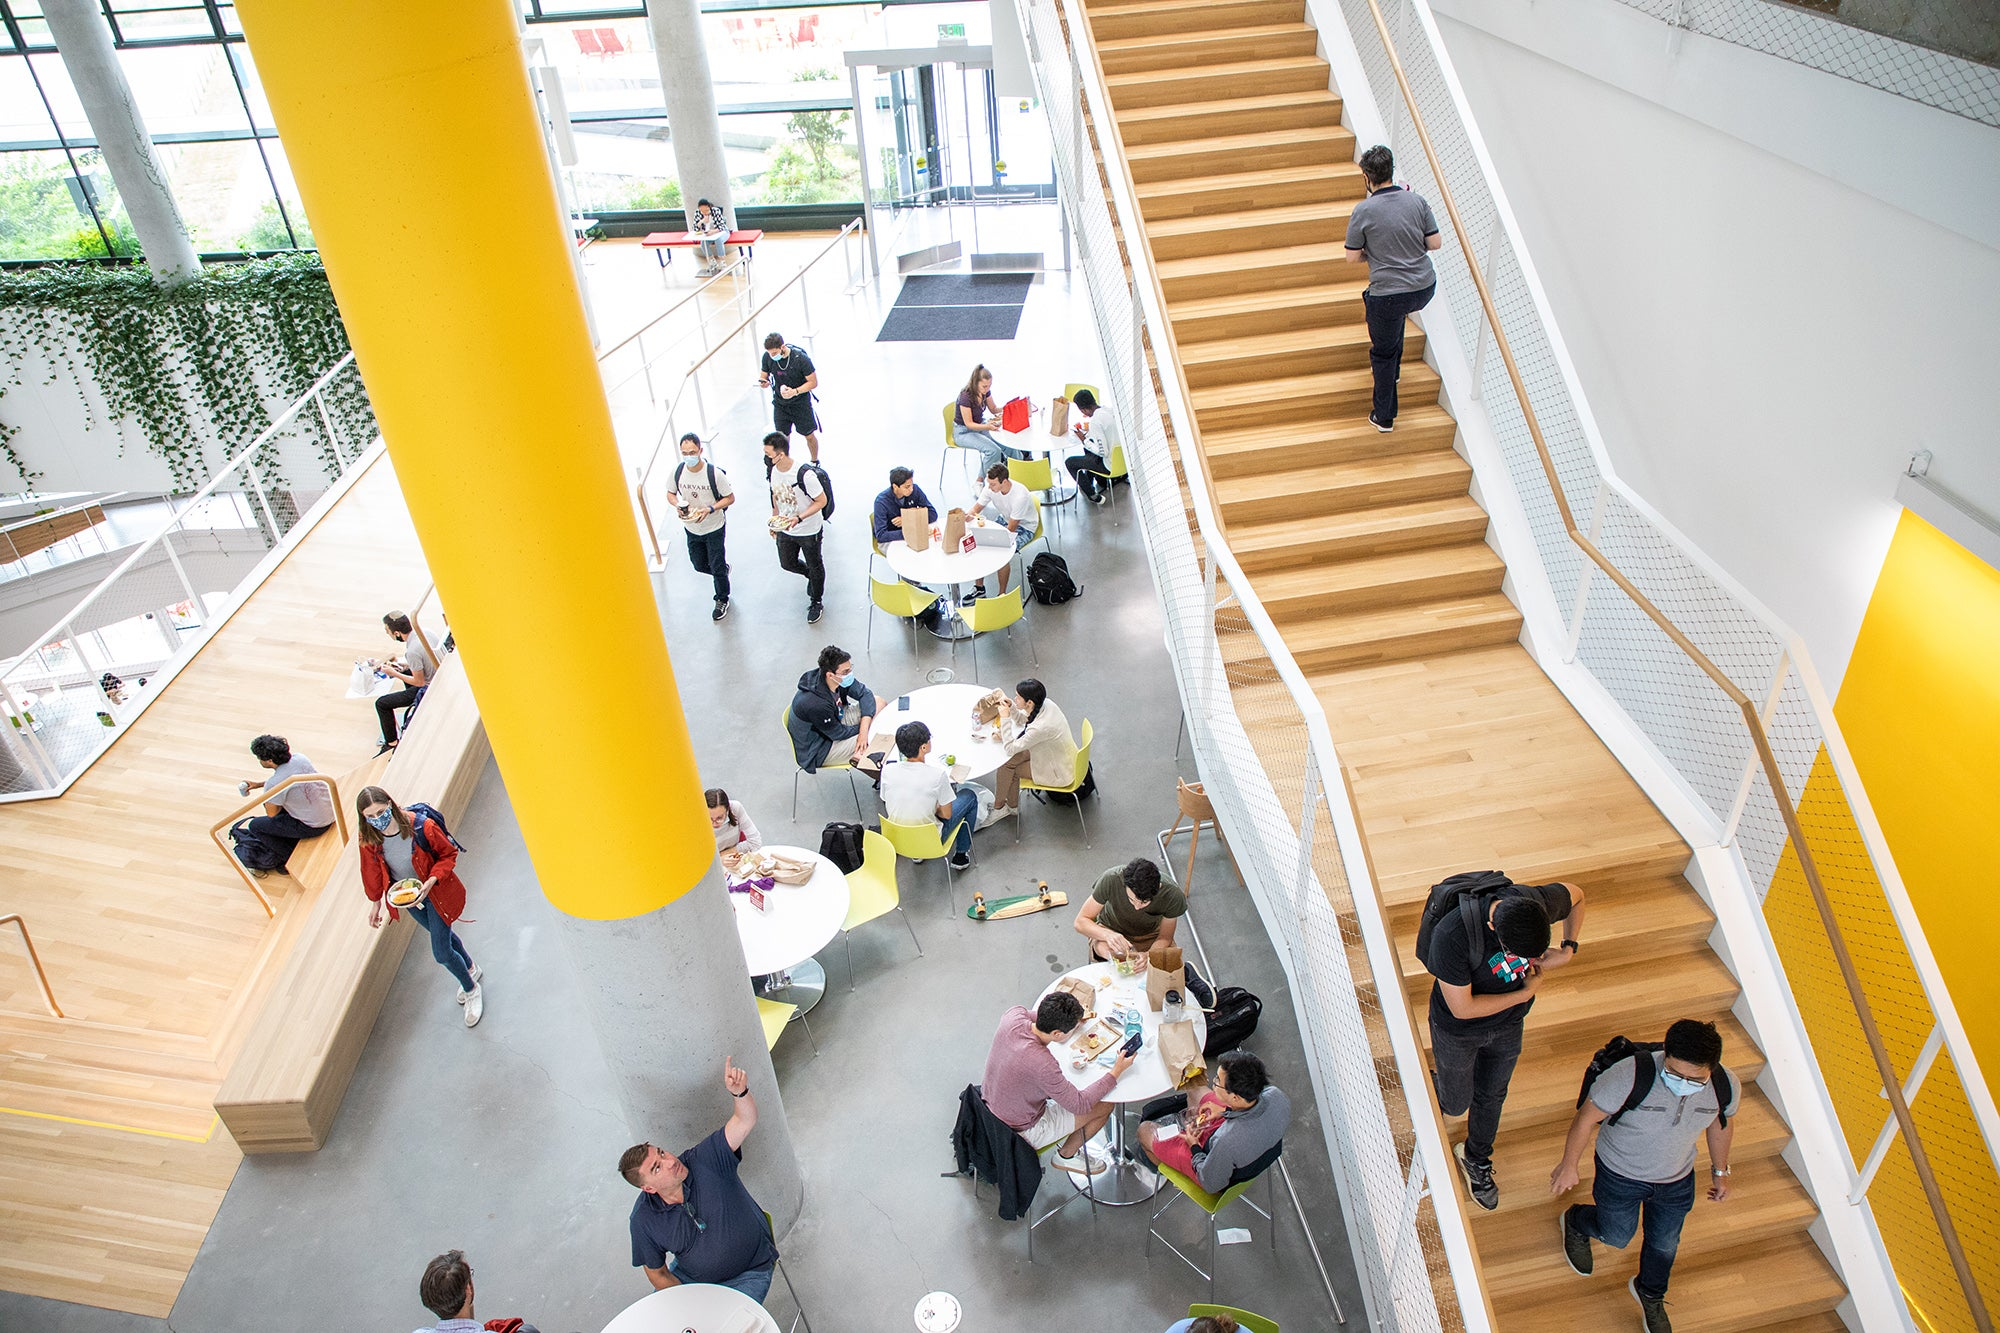 Students sit at tables and walk up stairs in a bright new building with a yellow column